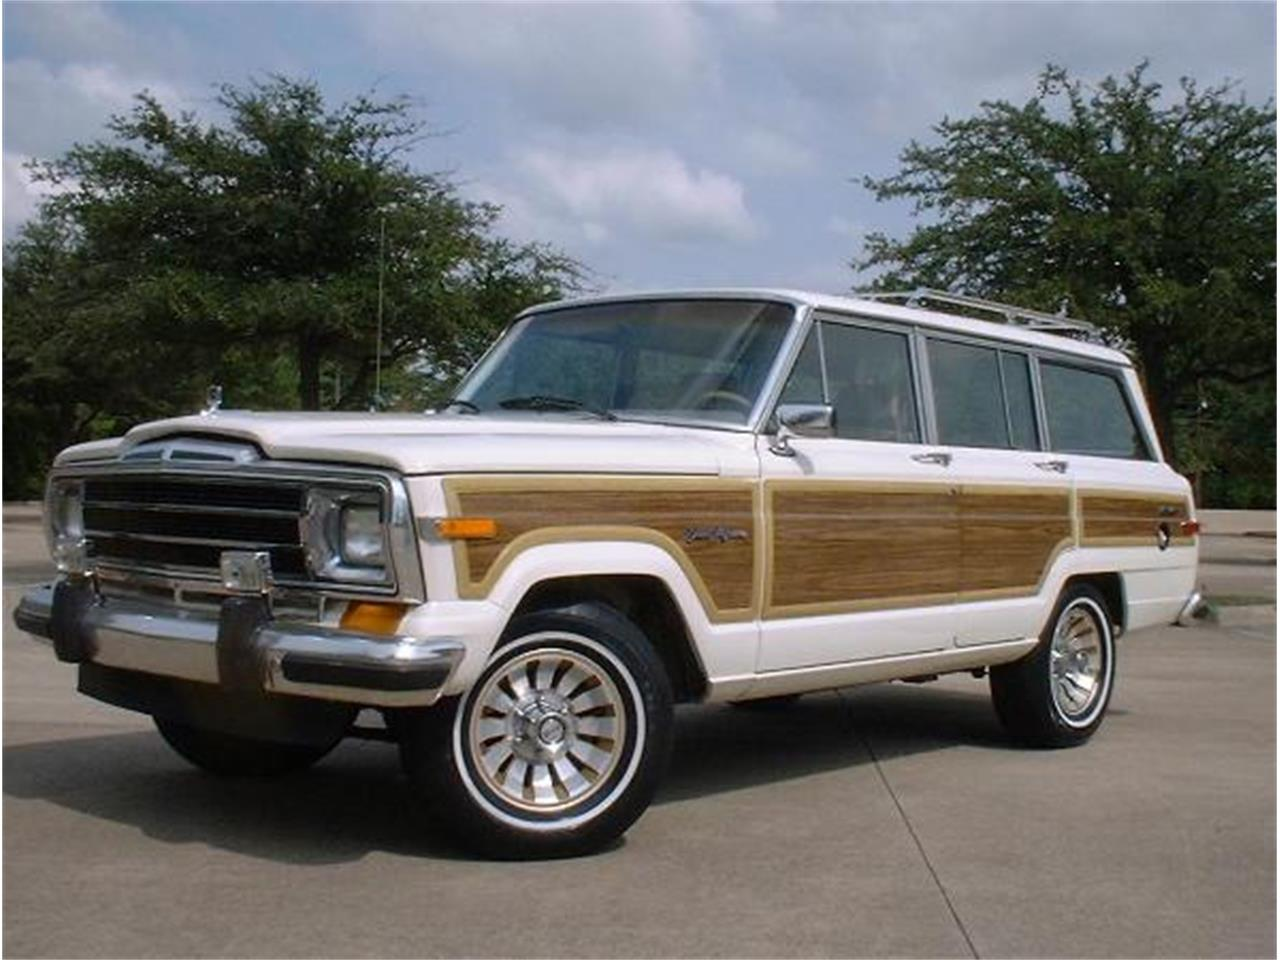 Jeep Grand Wagoneer For Sale >> 1987 Jeep Grand Wagoneer For Sale Classiccars Com Cc 1231430